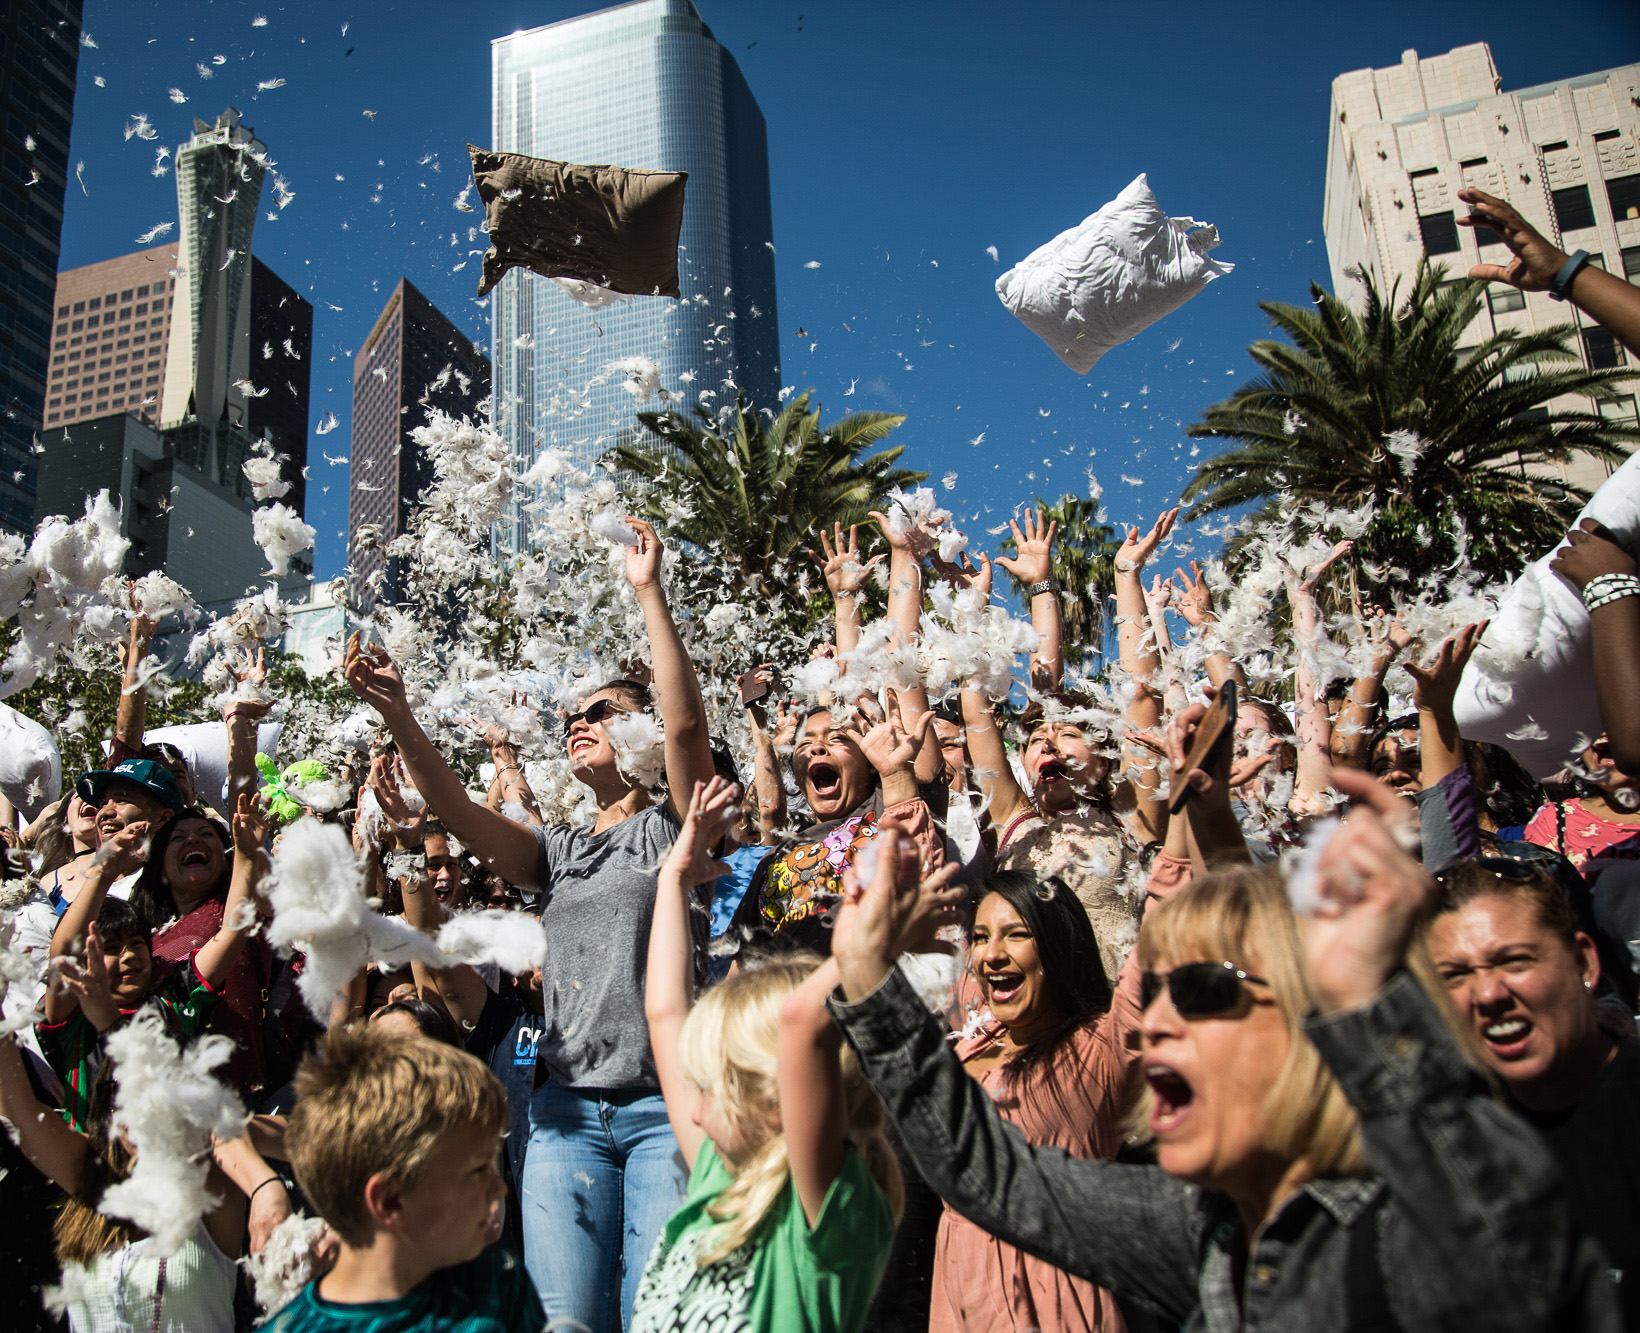 Participants of the International Pillow Fight Day cheer and scream while throwing pillows and feathers in the air in Pershing Square in Downtown Los Angles on Saturday, April 1 2017. Hundreds of people traded soft blows in a giant pillow fight that dwarfed even the biggest slumber party slugfest. Children, teens, adults and seniors swung pillows at one another for over 2 hours during Saturdays event. (Corsair Photo: Matthew Martin)